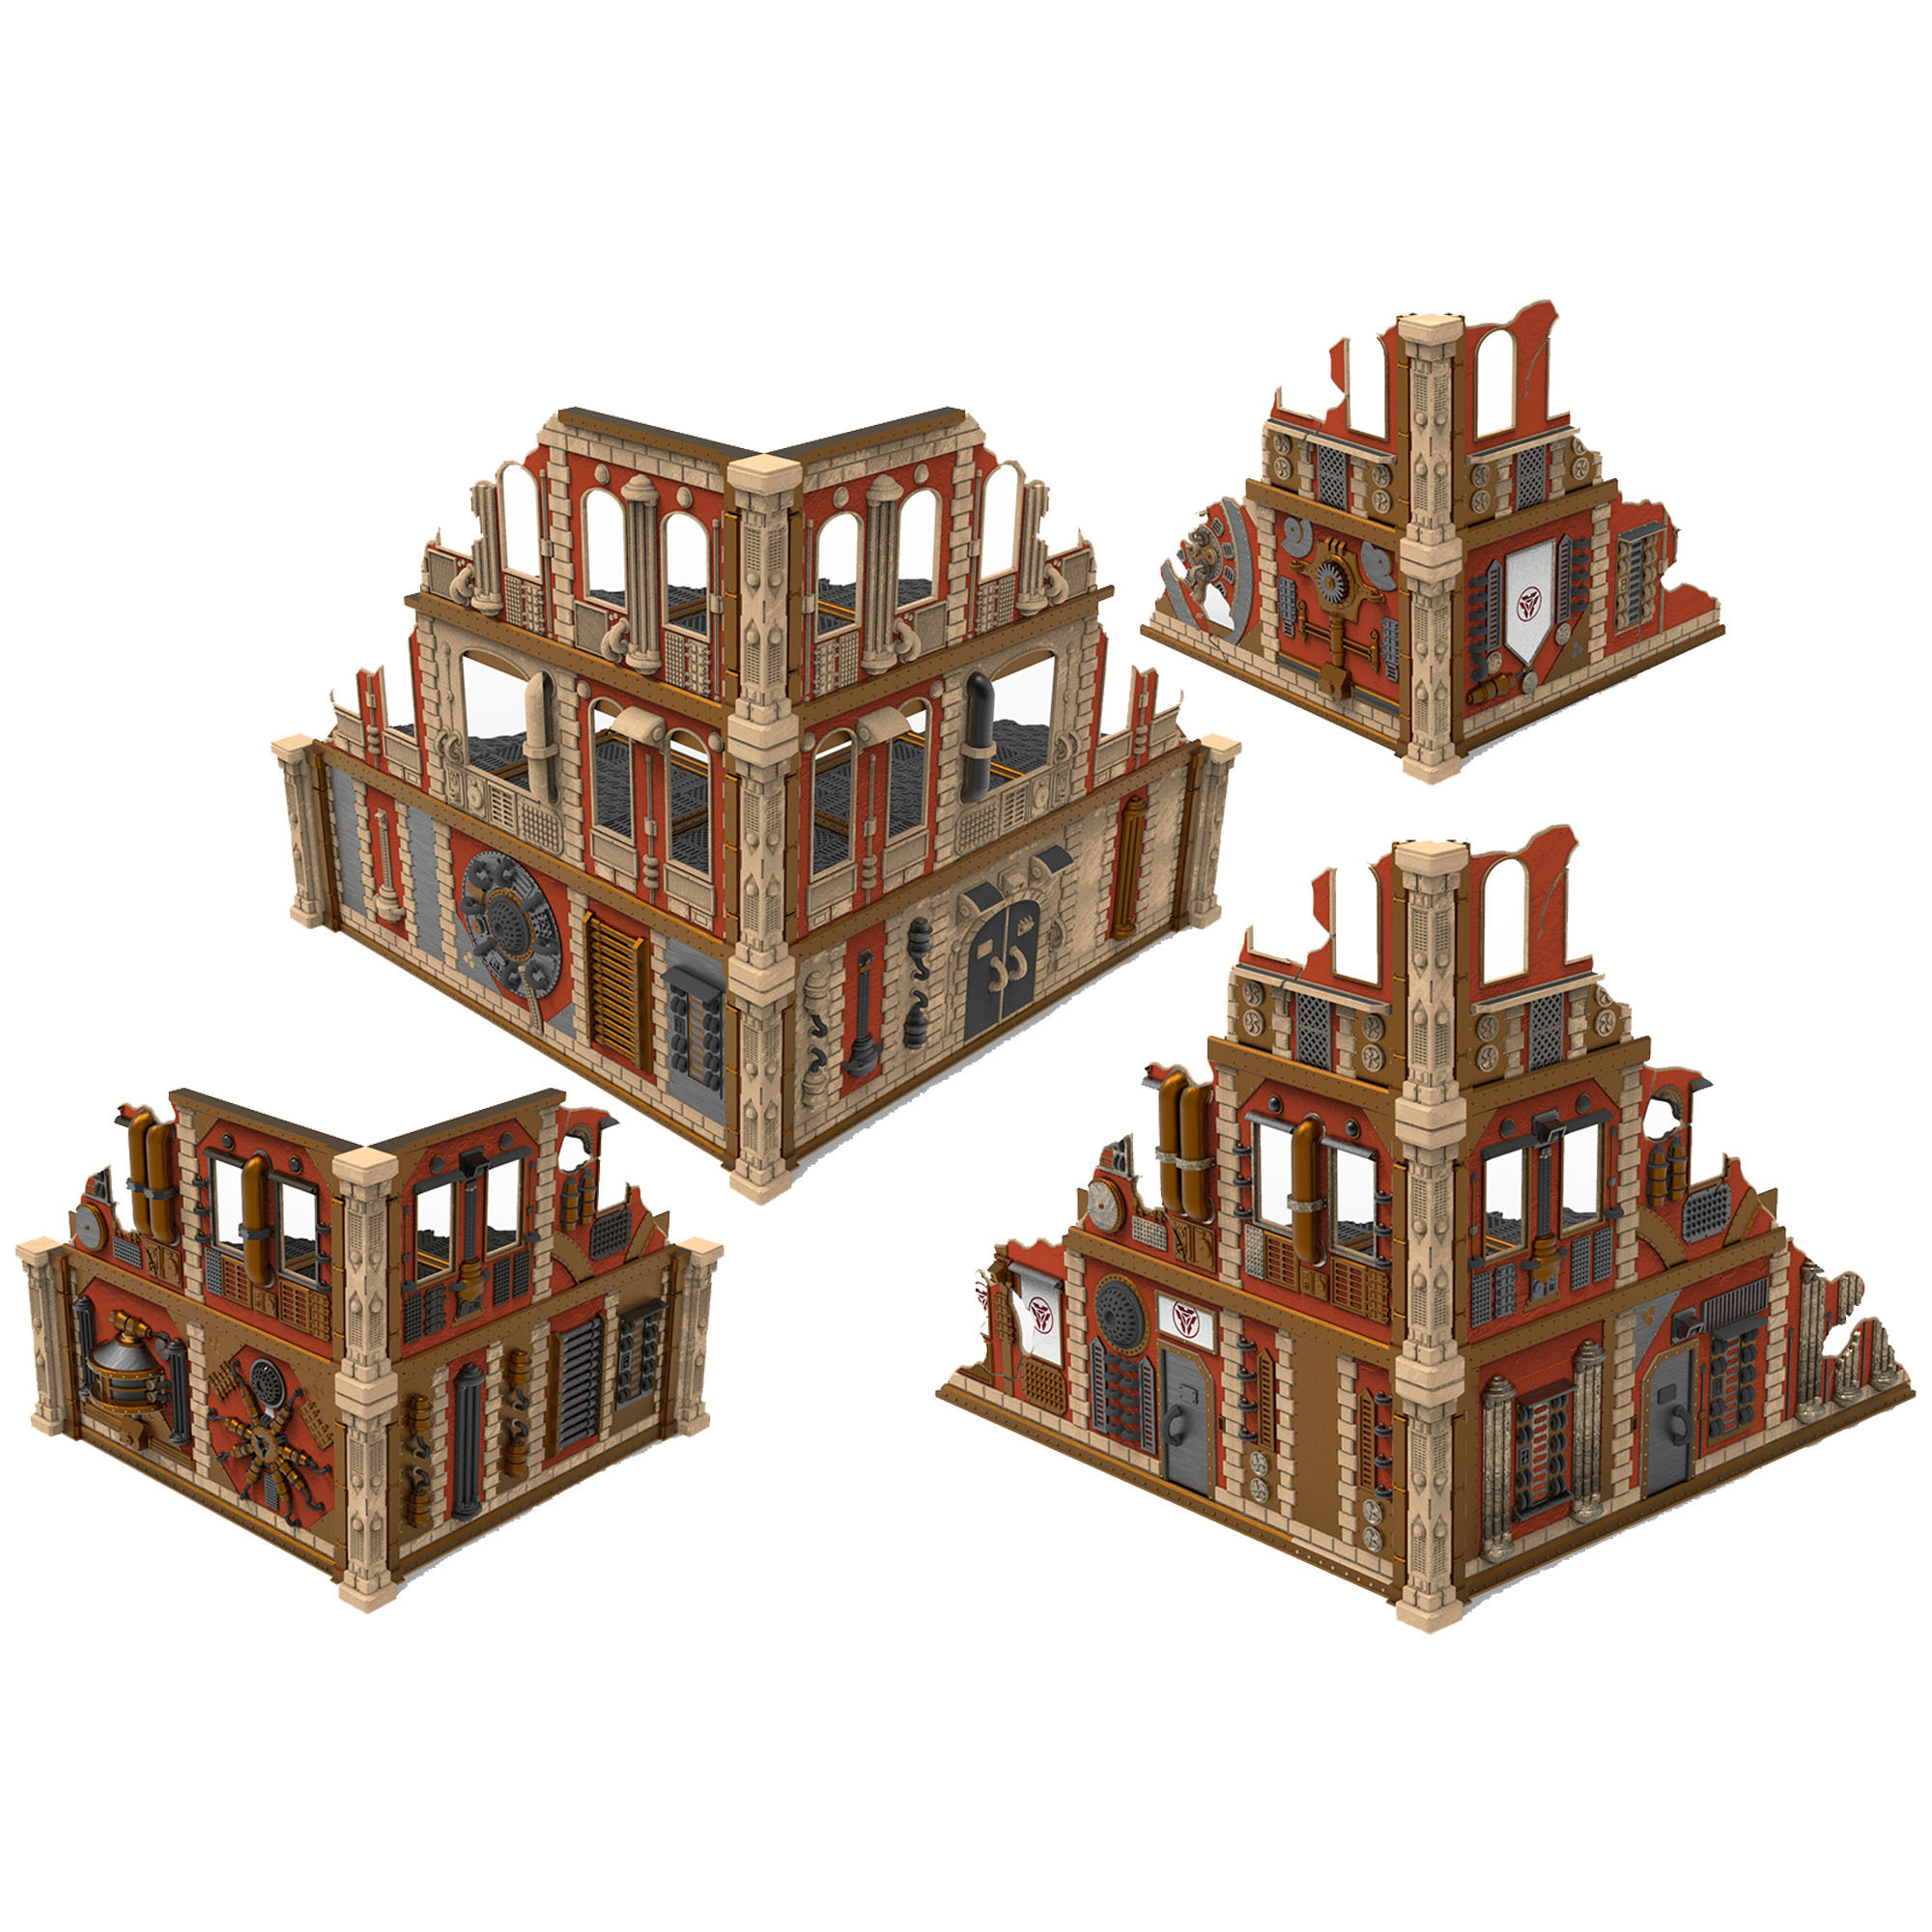 batiments eb.jpg Download STL file Modular industrial buildings for wargaming steampunk grimdark terrain • 3D print template, Alario